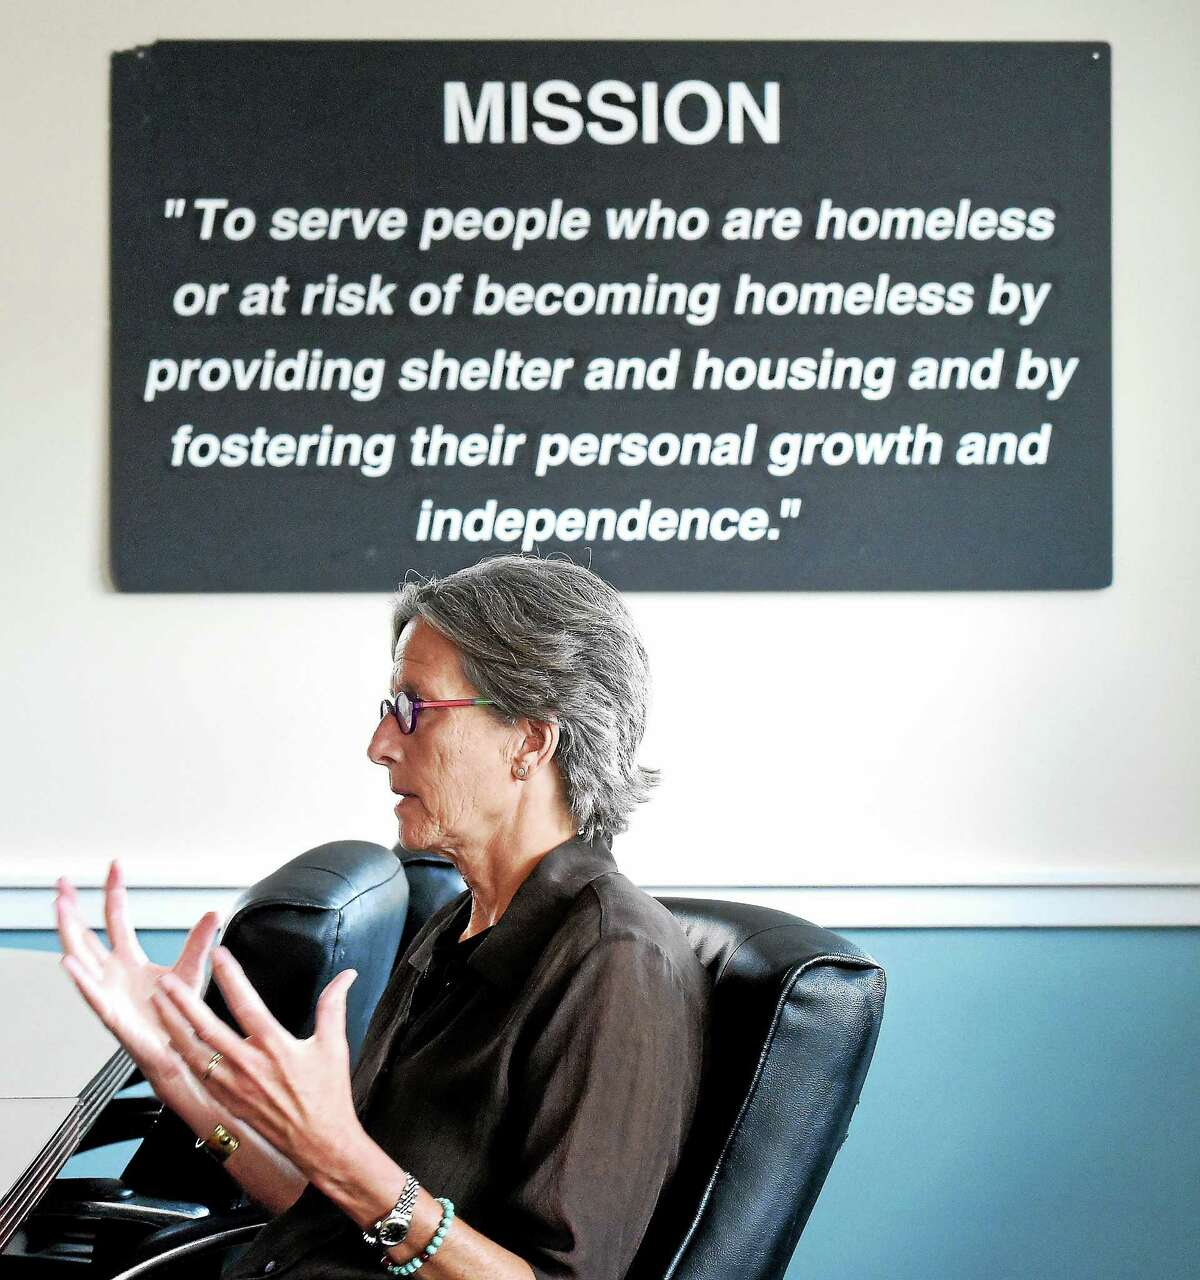 Columbus House Executive Director Alison Cunningham talks about homeless veterans during an interview at Columbus House in New Haven on 7/20/2015.